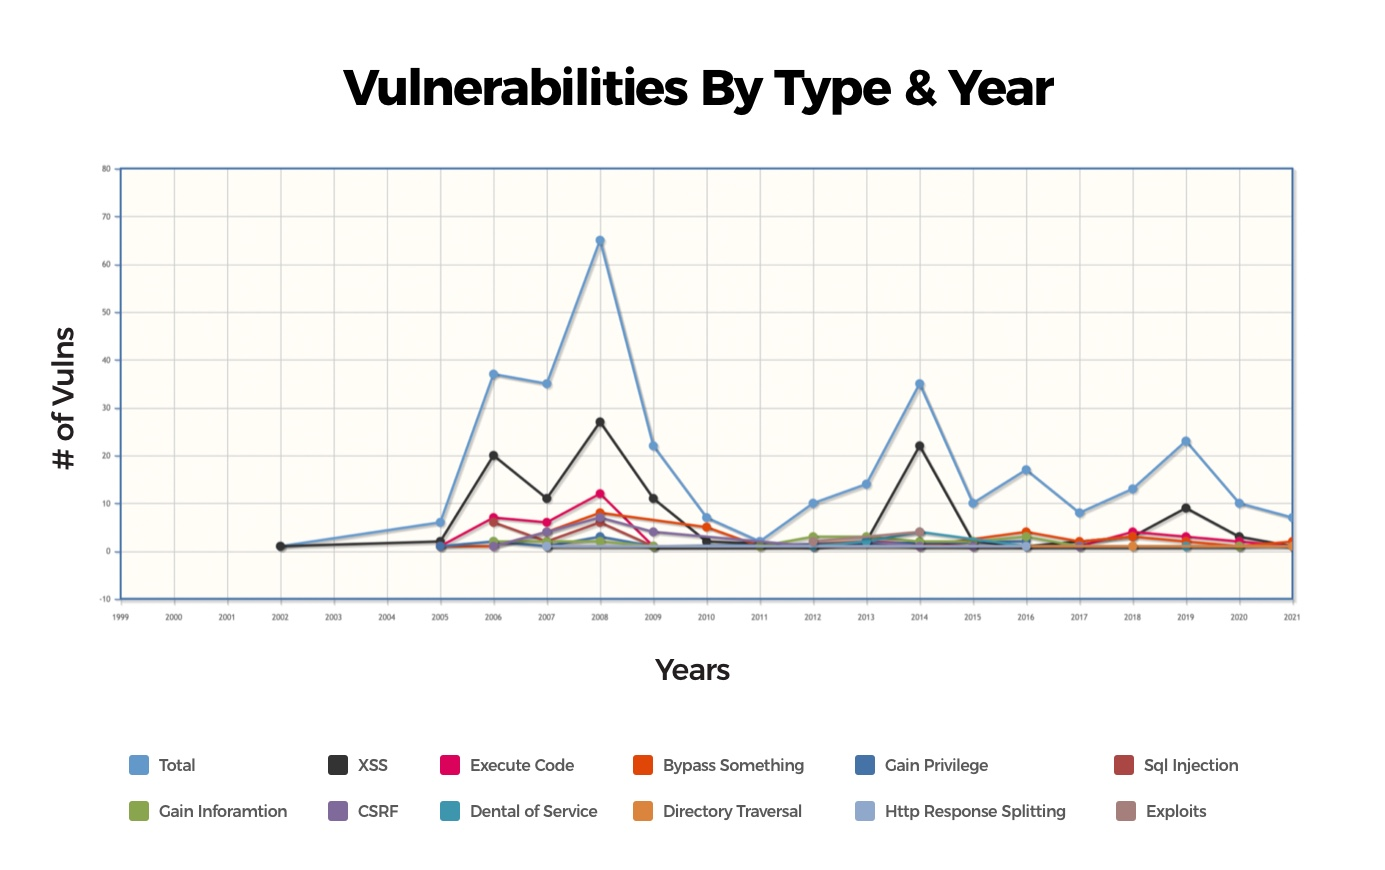 Number of vulnerabilities on Drupal year-by-year